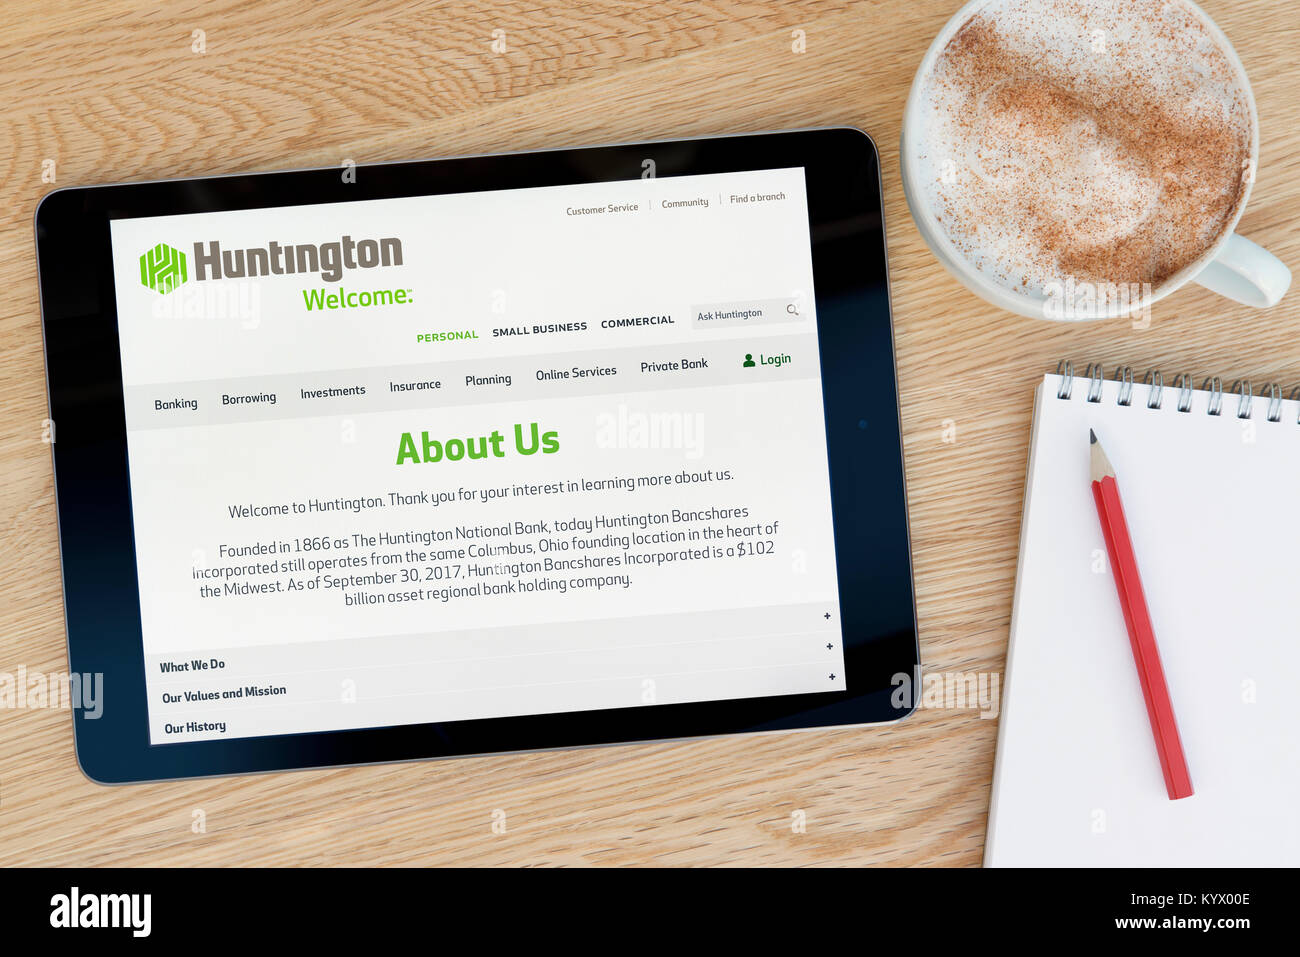 The Huntington Bancshares website on an iPad tablet, on a wooden table beside a notepad, pencil and cup of coffee - Stock Image